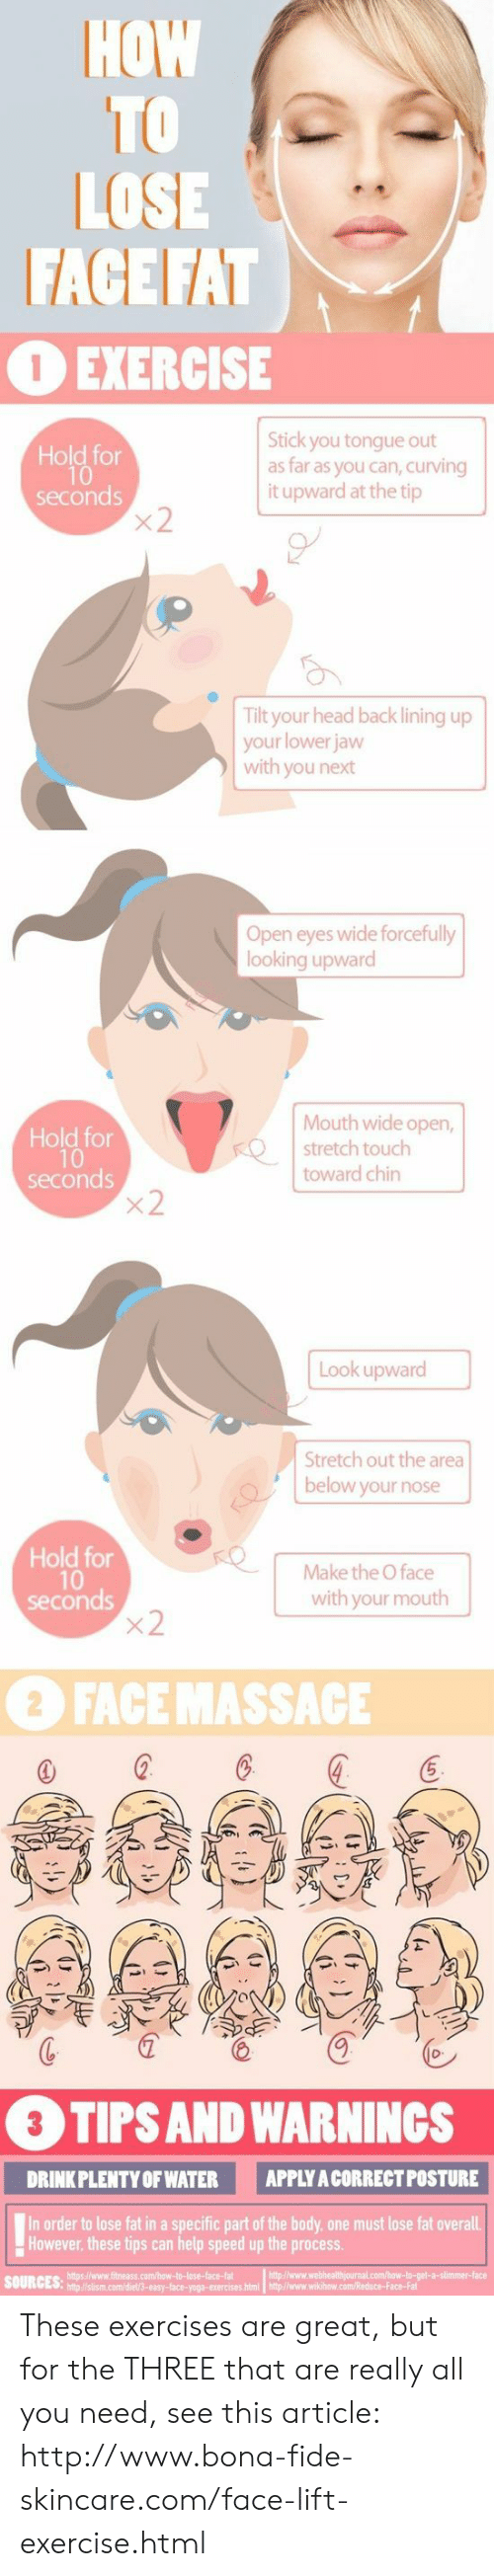 Head Back: HOW  TO  LOSE  FACE FAT  OEXERCISE  Stick you tongue out  as far as you can, curving  it upward at the tip  Hold for  seconds  x2  Tilt your head back lining up  your lower jaw  with you next  Open eyes wide forcefully  looking upward  Mouth wide open,  stretch touch  Hold for  10  seconds  x2  toward chin  Look upward  Stretch out the area  below your nose  Hold for  10  seconds  x2  Make the O face  with your mouth  2 FACE MASSACE  3 TIPS AND WARNINGS  APPLY A CORRECT POSTURE  DRINK PLENTY OF WATER  In order to lose fat in a specific part of the body, one must lose fat overall  However, these tips can help speed up the process  AK These exercises are great, but for the THREE that are really all you need, see this article: http://www.bona-fide-skincare.com/face-lift-exercise.html